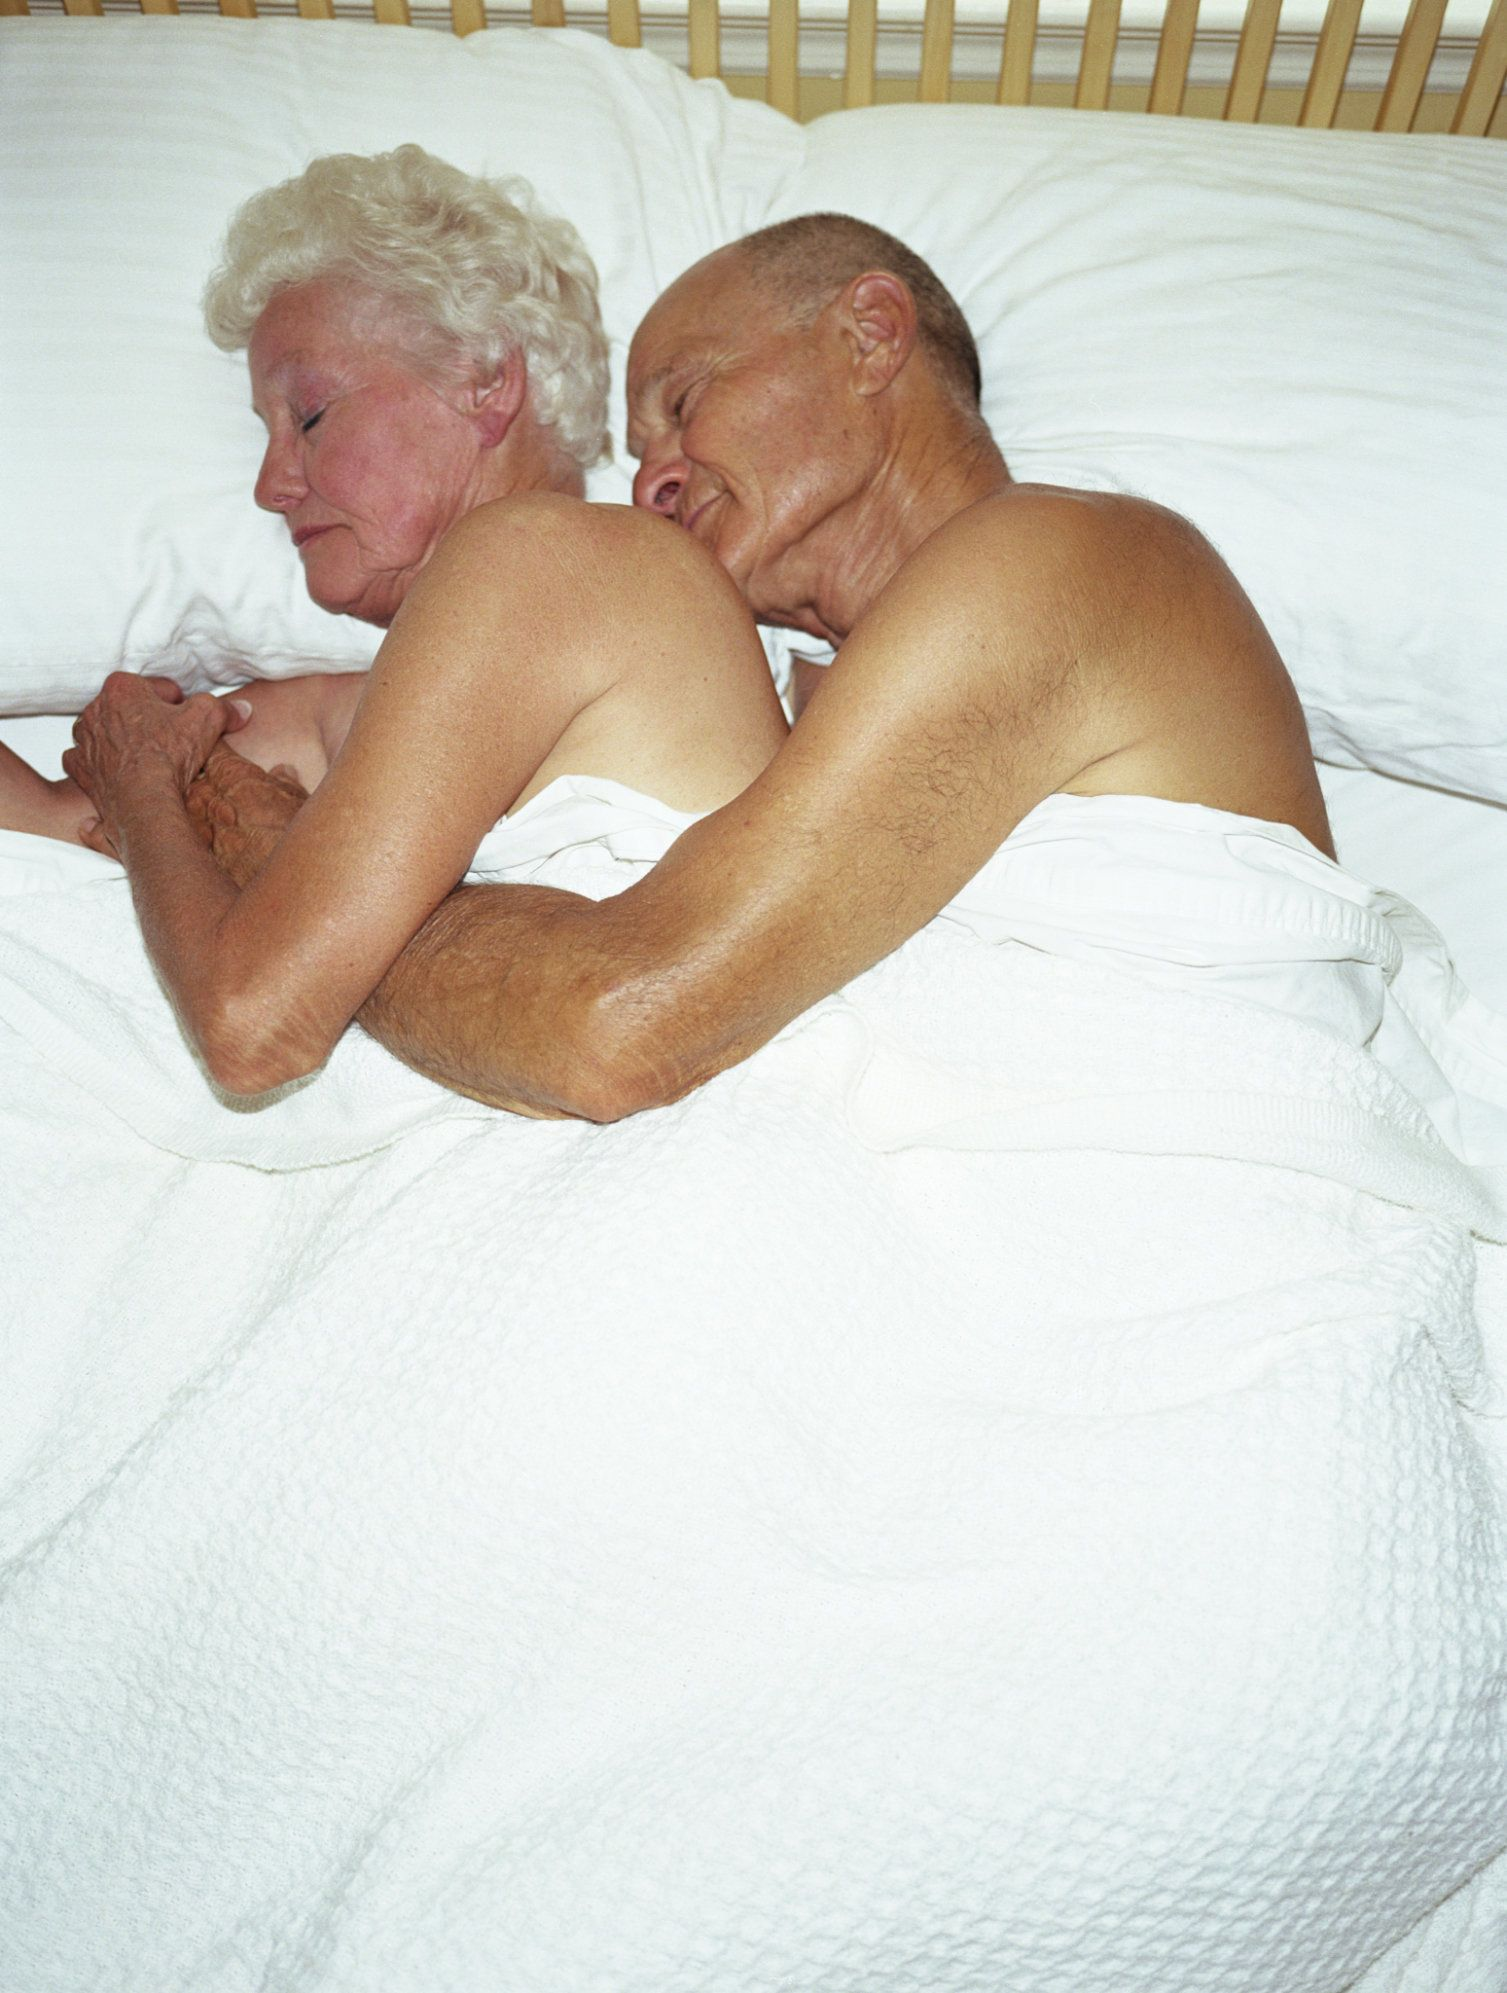 Making love to an older woman